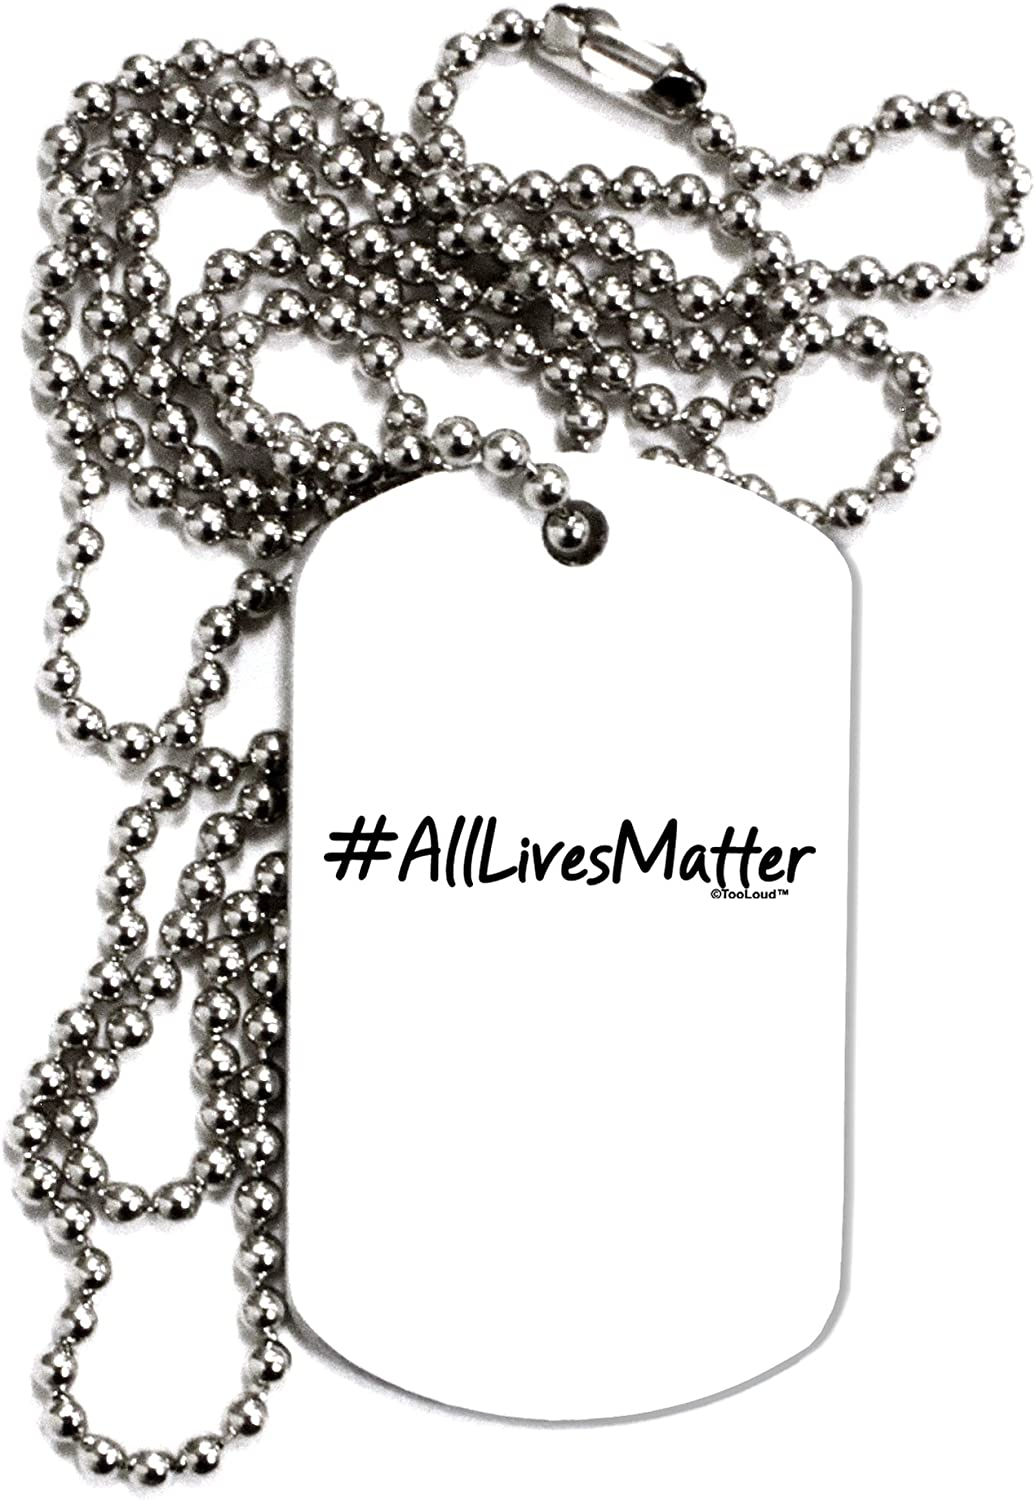 TOOLOUD Hashtag AllLivesMatter Adult Dog Tag Chain Necklace